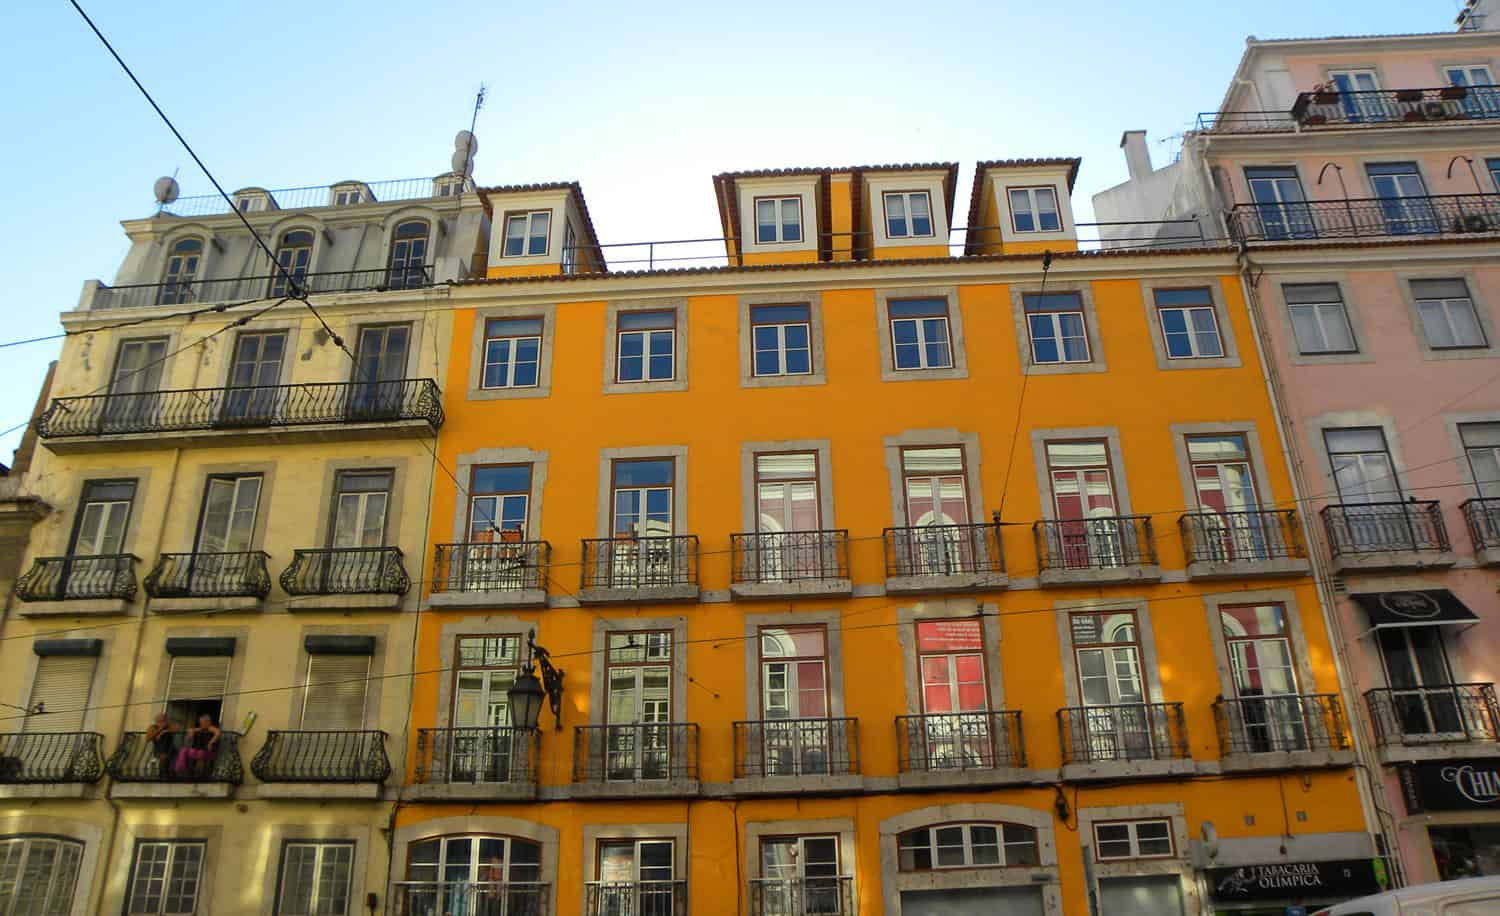 buildings in Lisbon